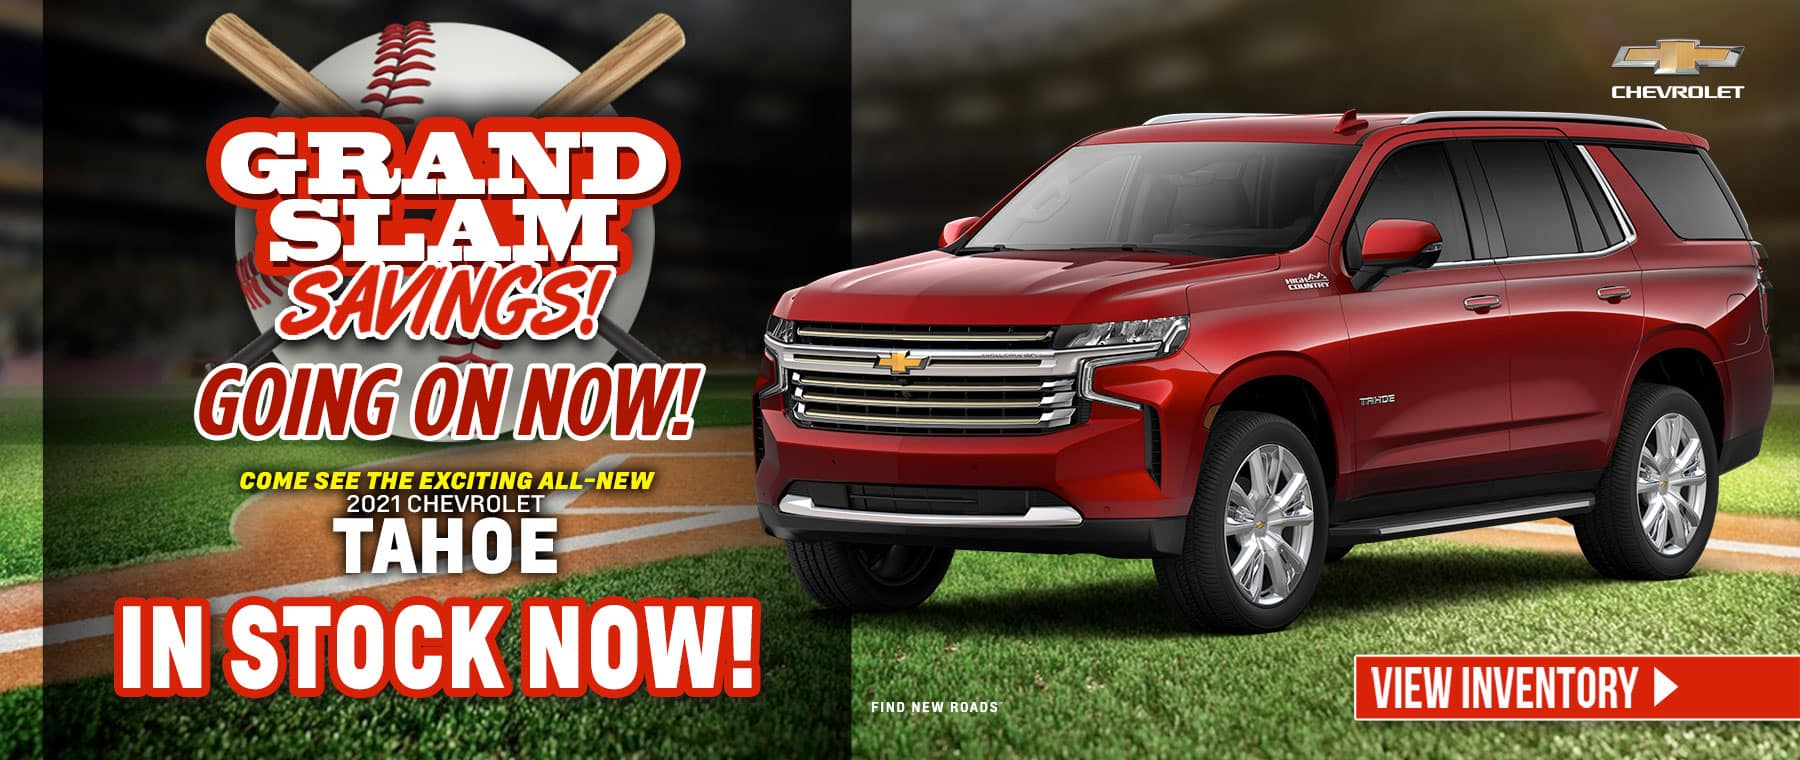 Come see the exciting All-New 2021 Chevrolet Tahoe - In Stock Now!